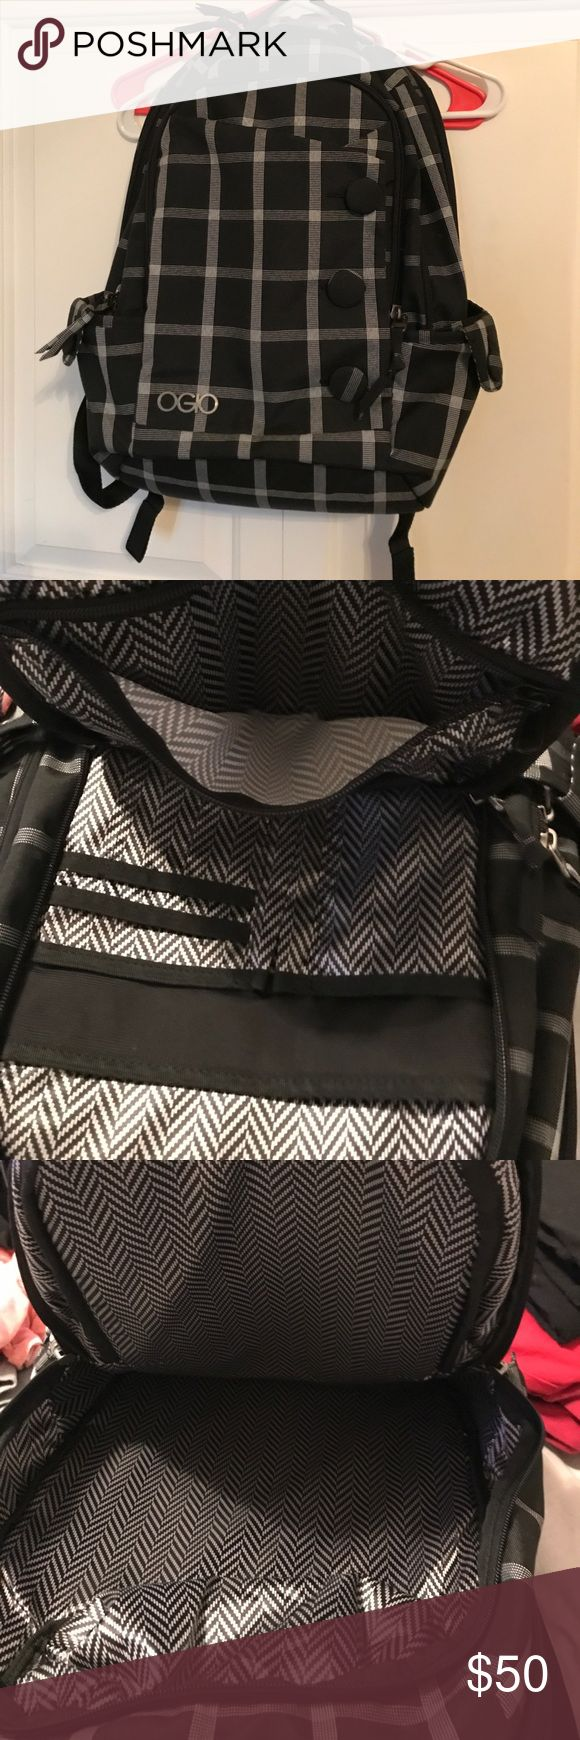 OGIO BackPack 🎒 Black and White plaid backpack with lot of room for your laptop 💻, your tablet or iPad, headphone 🎧, and of course your cell phone with lots more room for your school books 📚 or anything else you need it for. Only used for 3 months and it's in excellent condition ogio Bags Backpacks